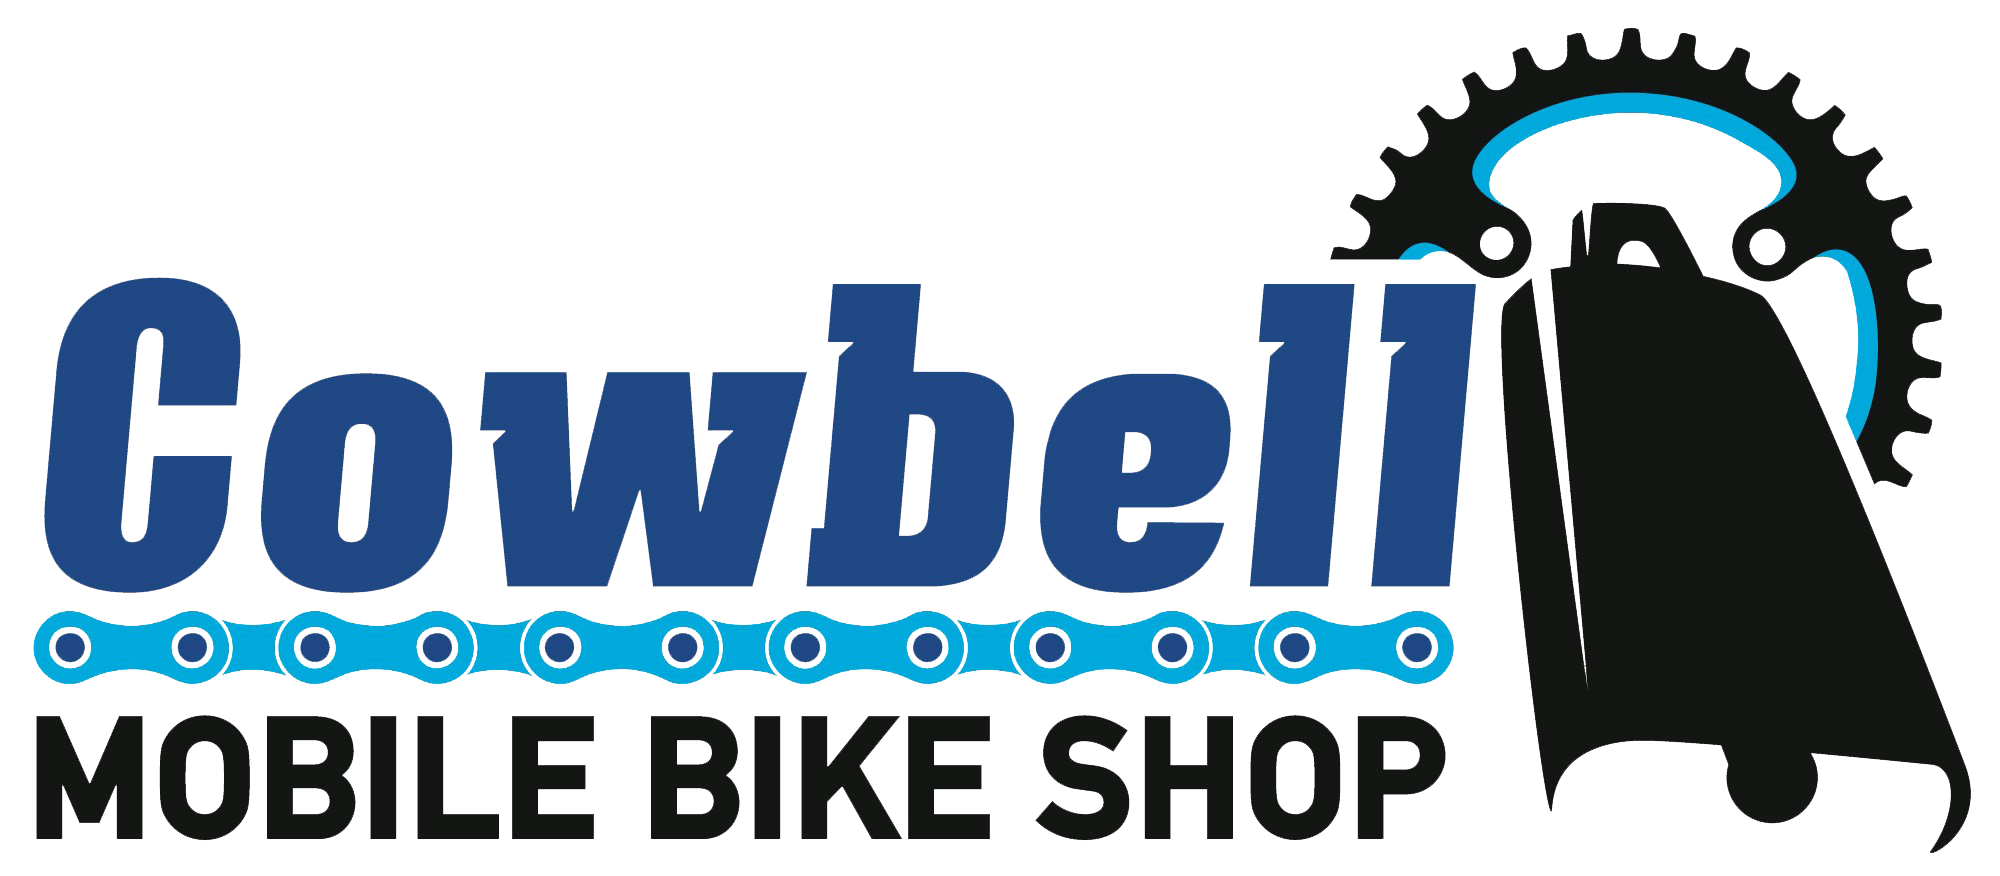 cowbell_mobile_bike_shop_logo.png